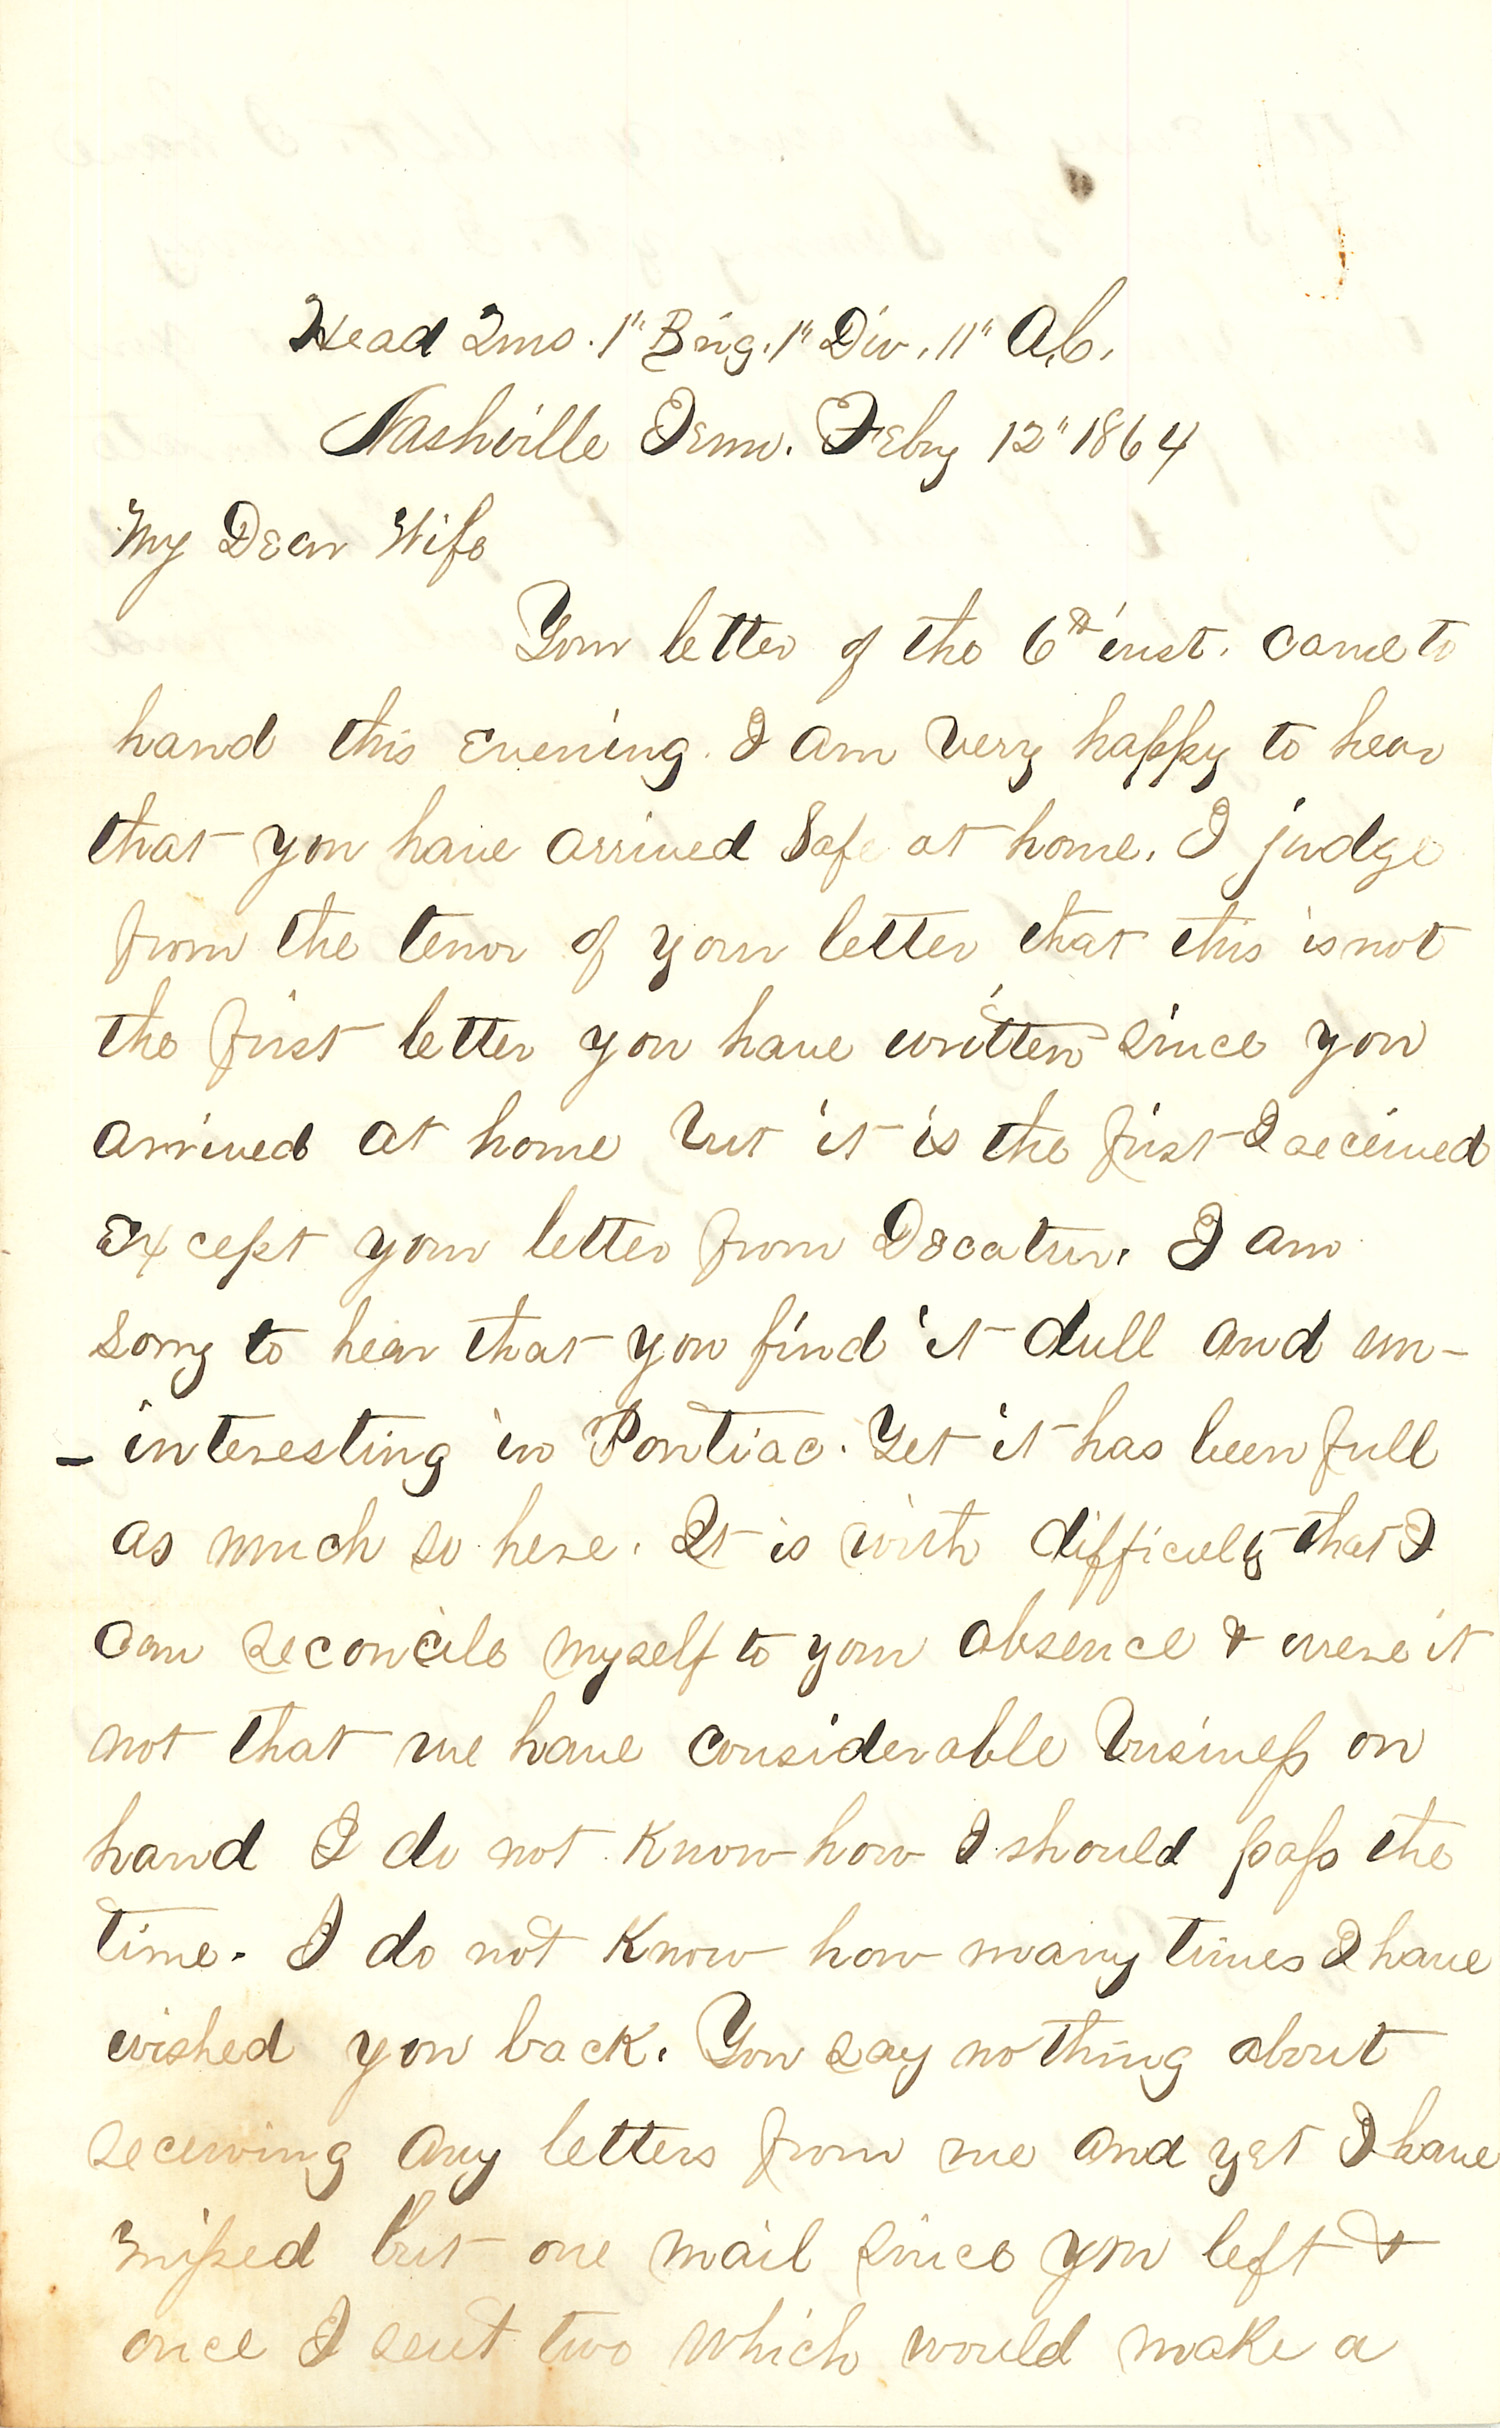 Joseph Culver Letter, February 12, 1864, Page 1